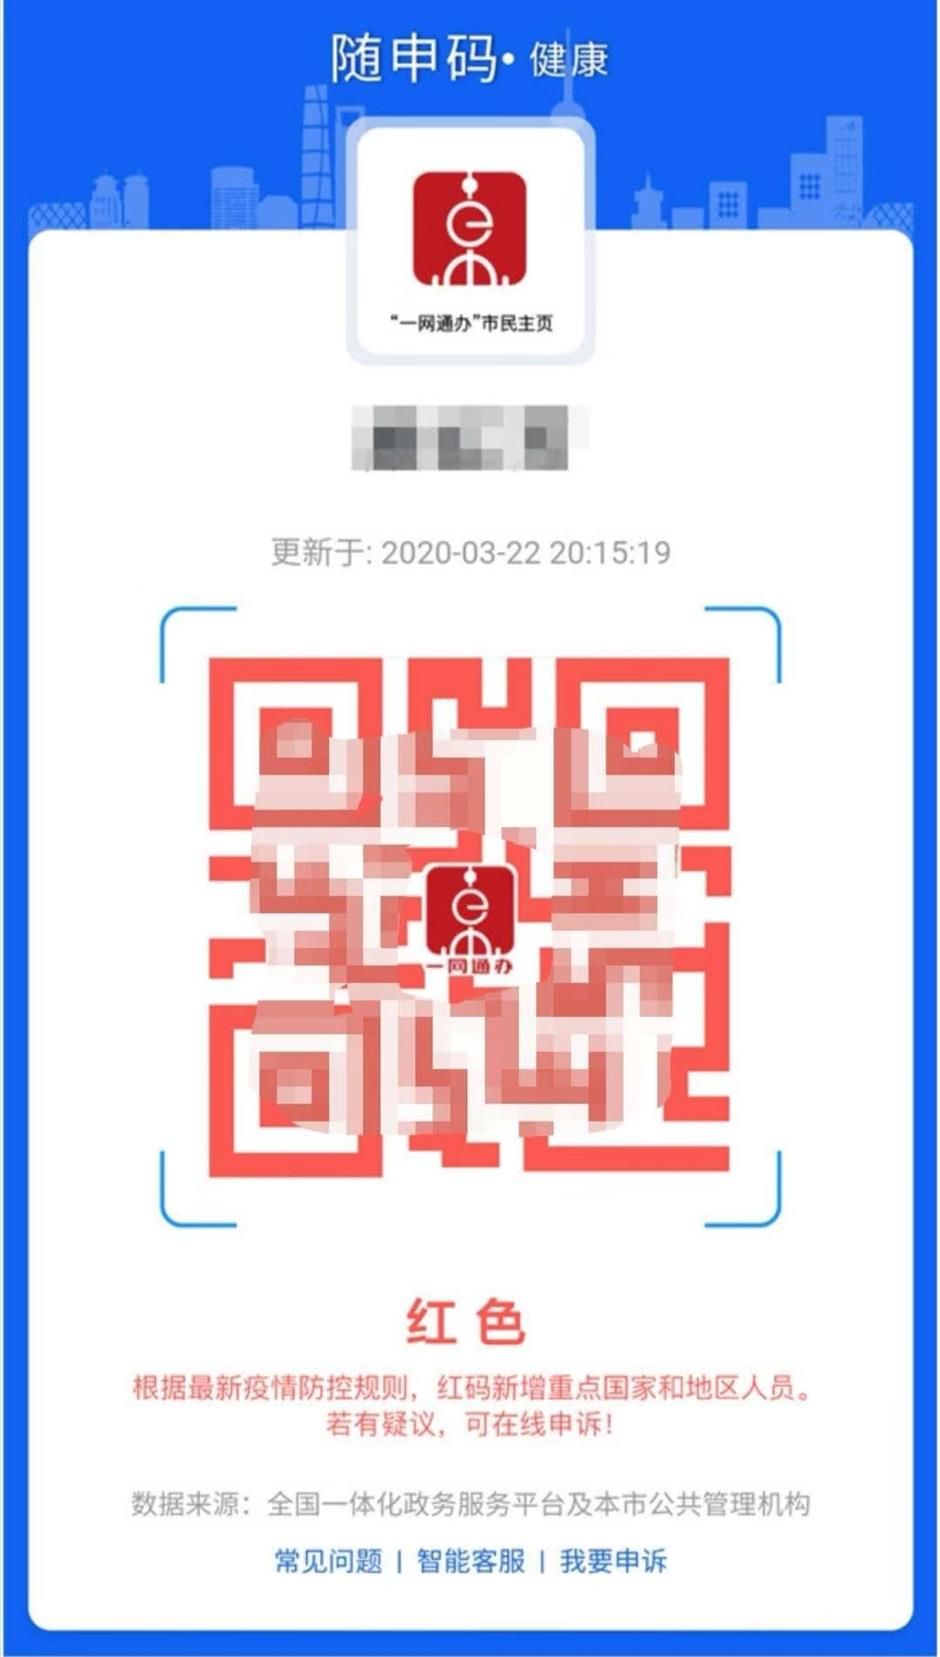 Red QR codes for arrivals from watchlist countries